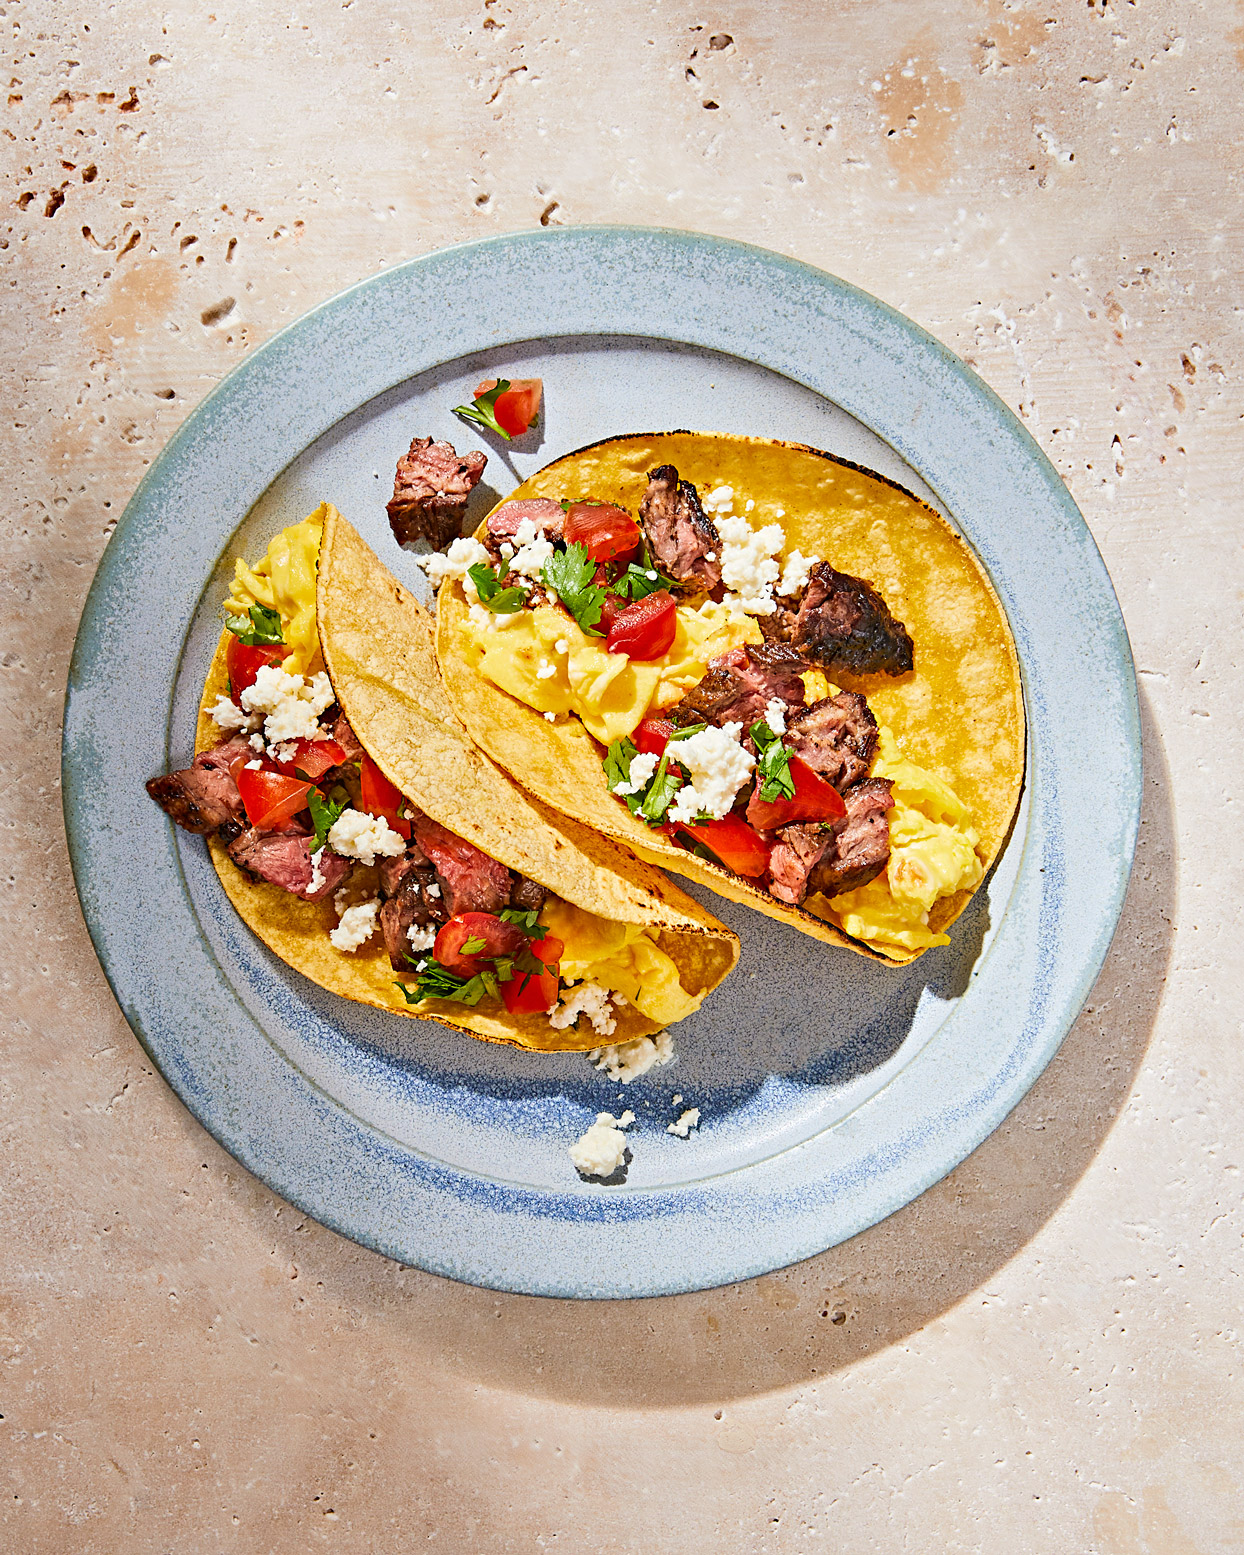 Steak-and-Egg Tacos